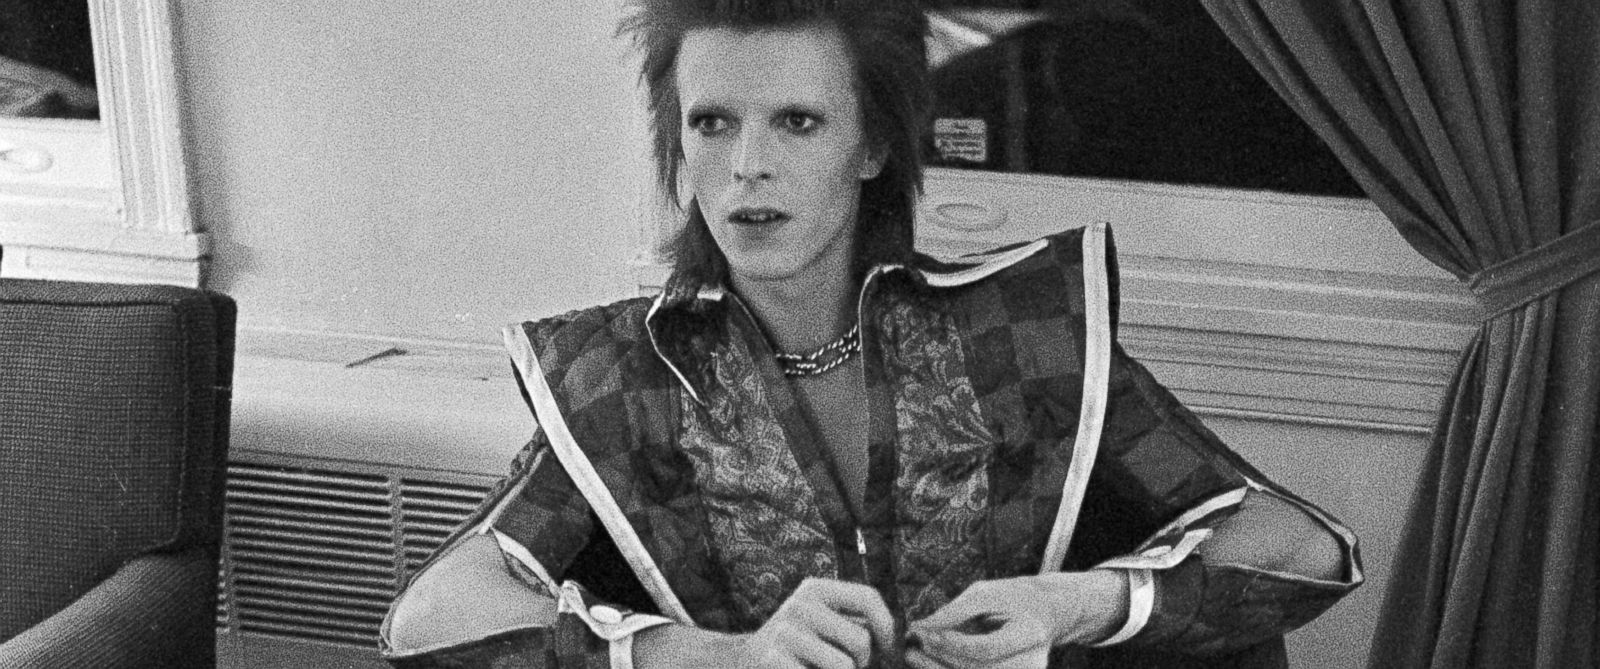 PHOTO: David Bowie during his Ziggy Stardust period is pictured in Philadelphia, Dec. 1, 1972.